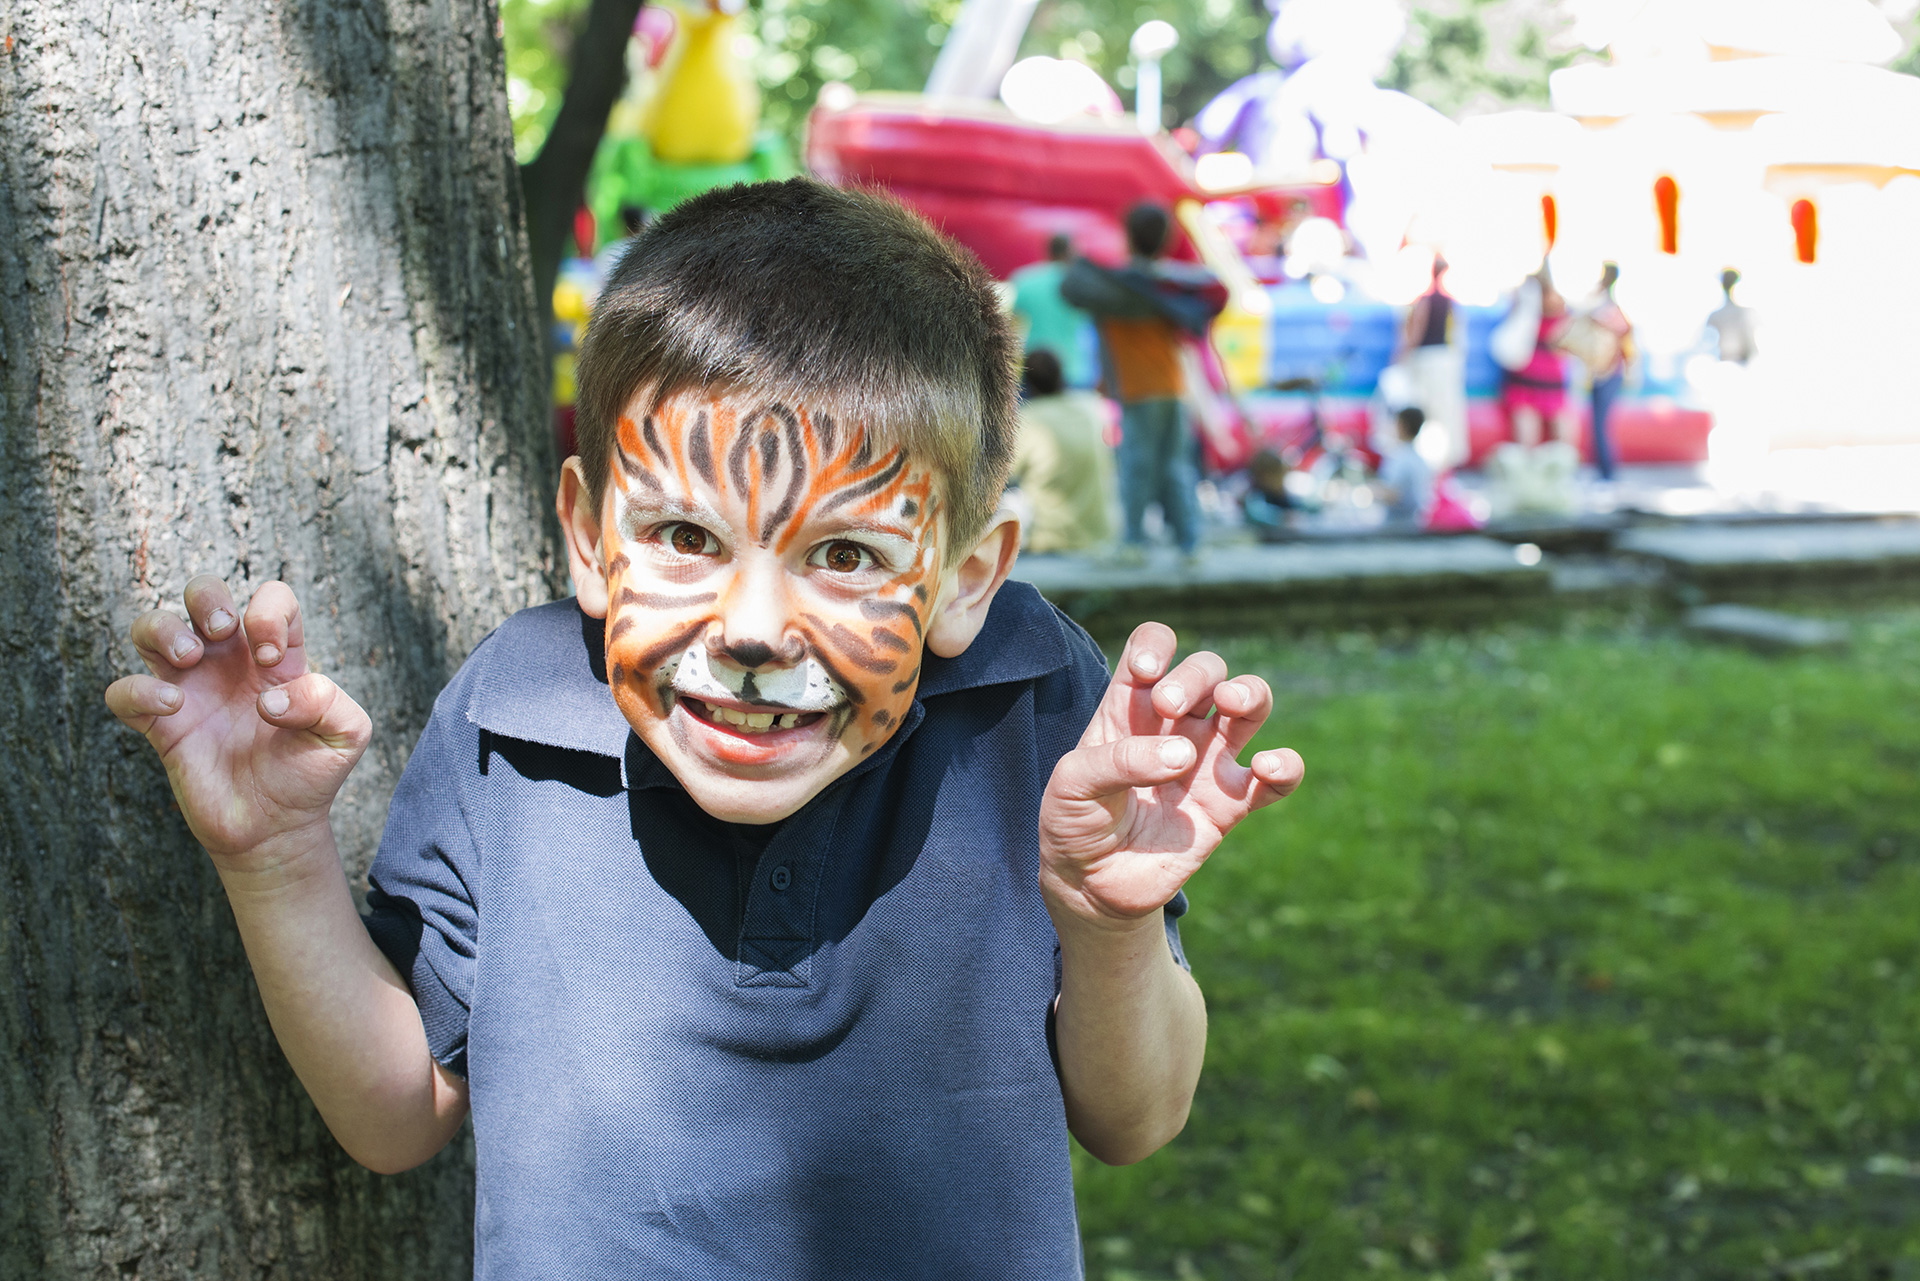 A young boy with his face painted like a tiger